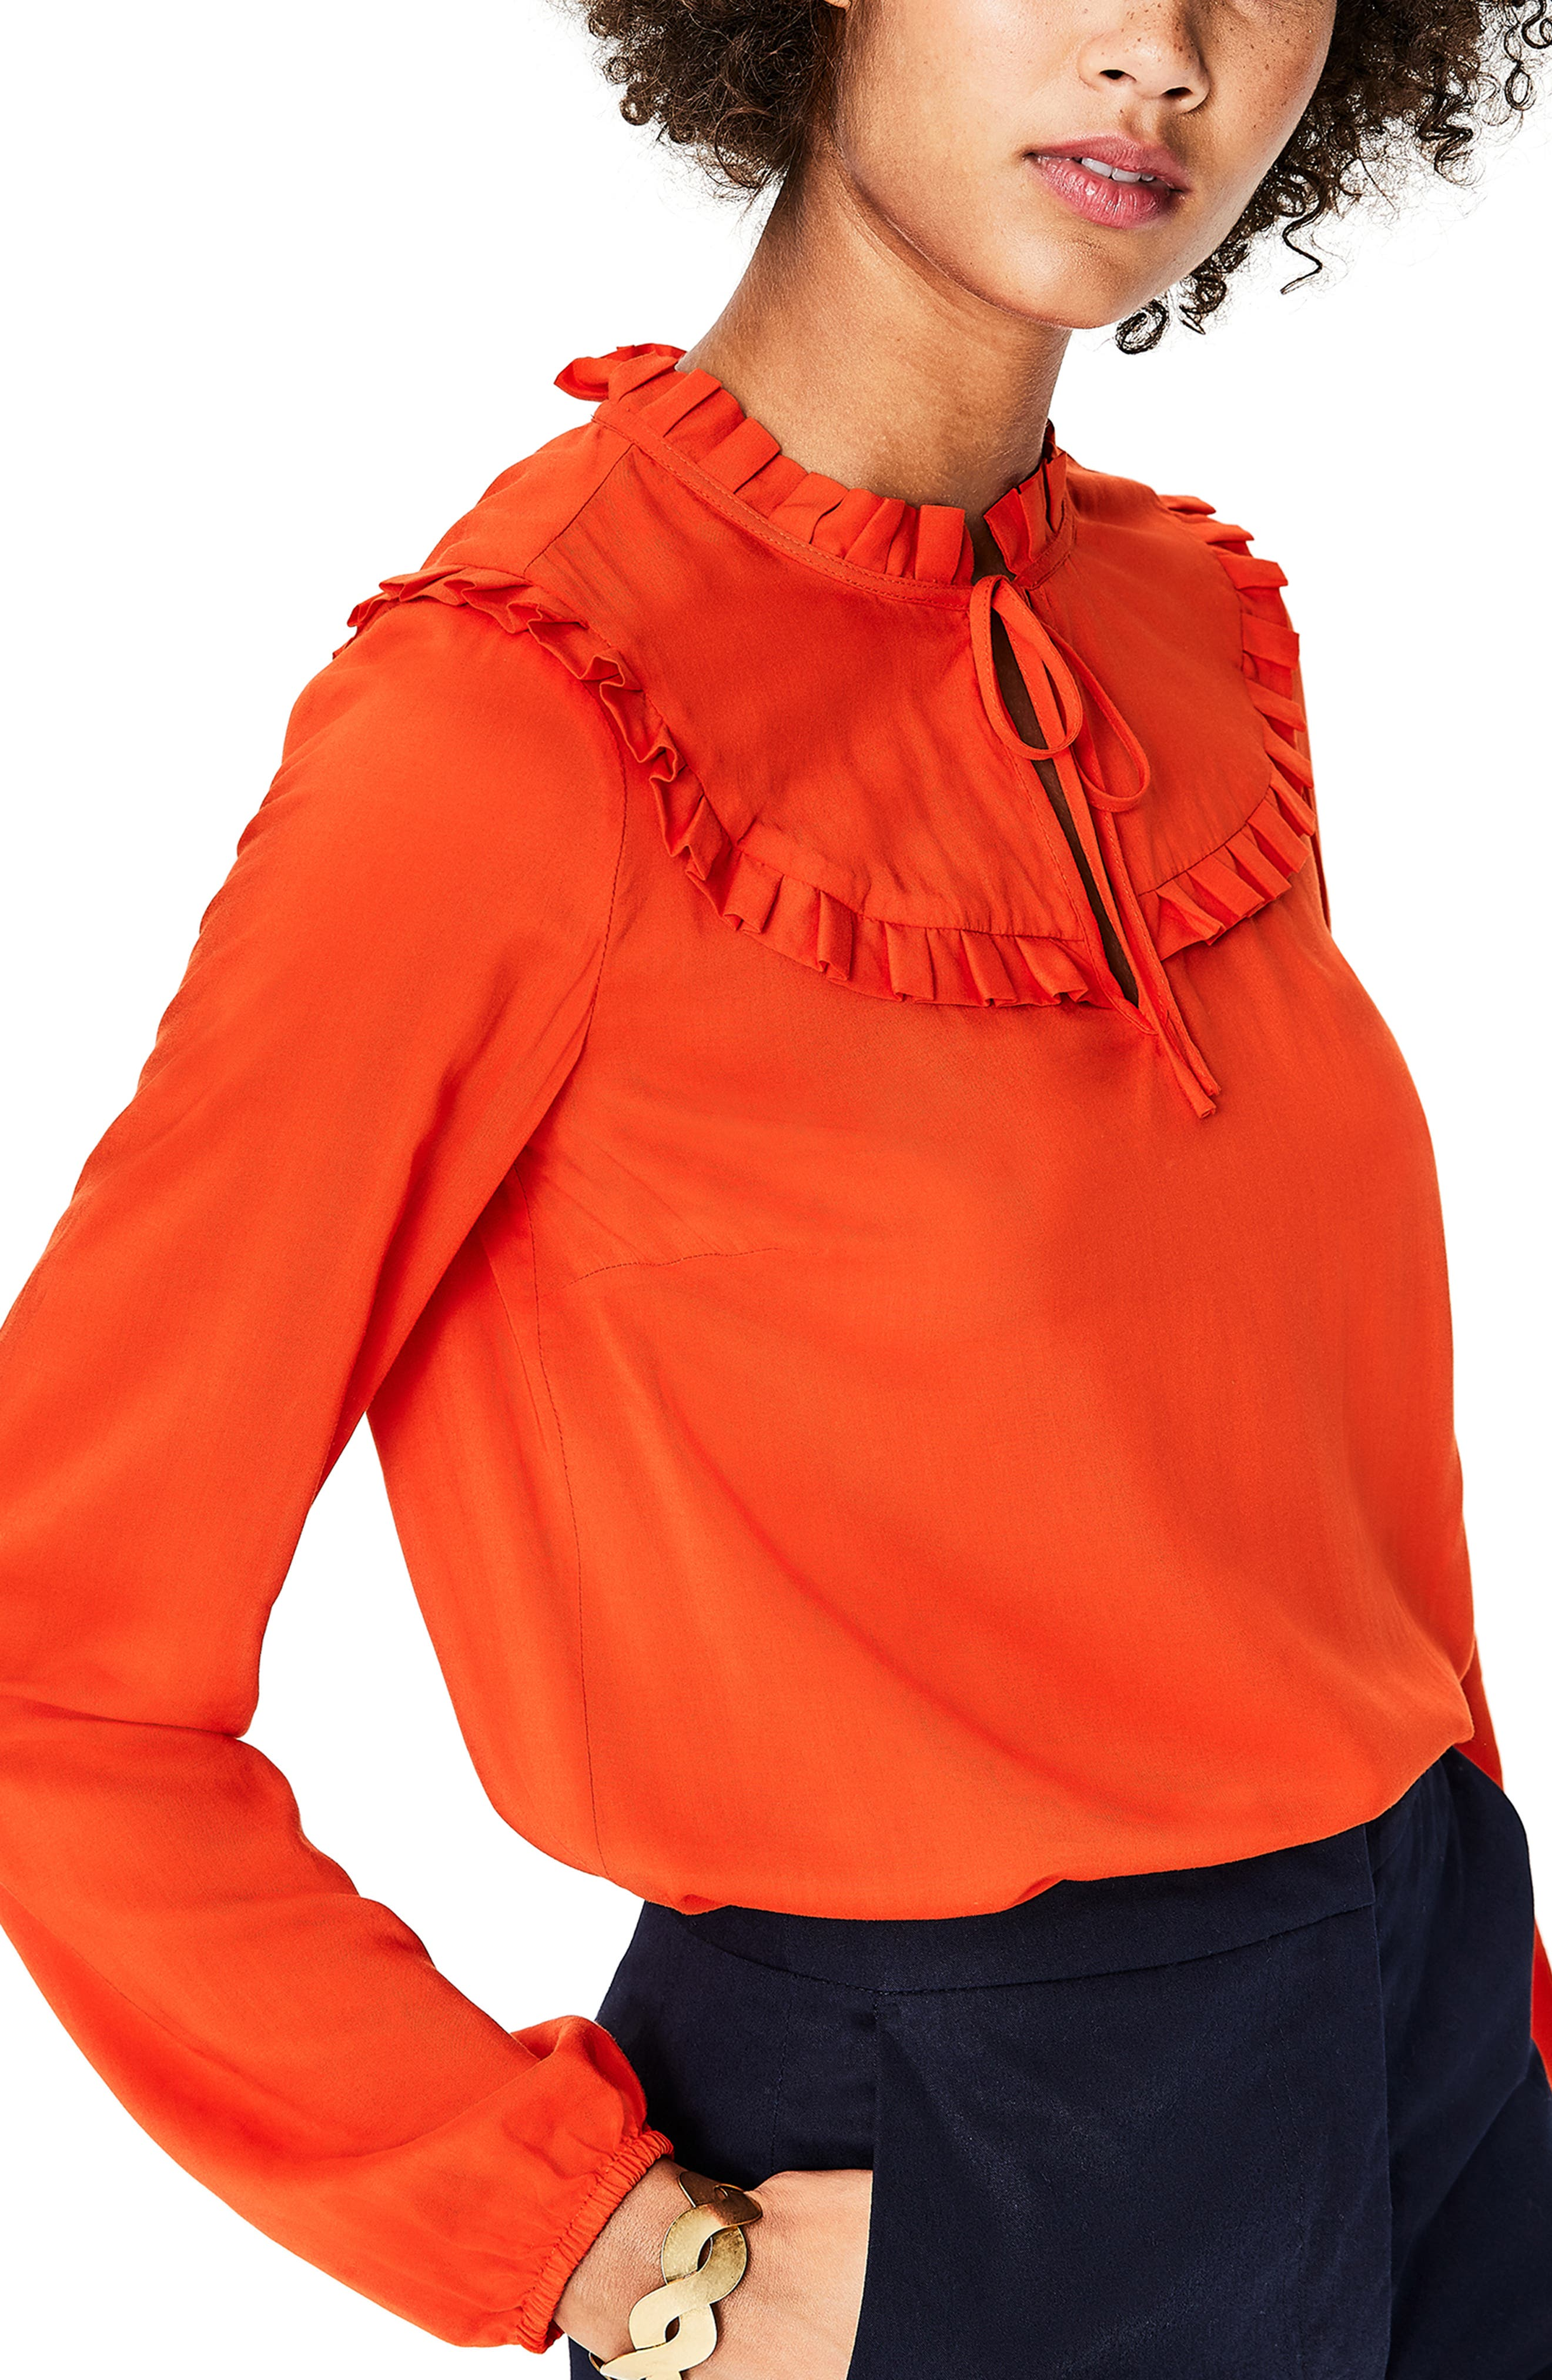 Betsy Ruffle Top,                             Alternate thumbnail 3, color,                             RED POP